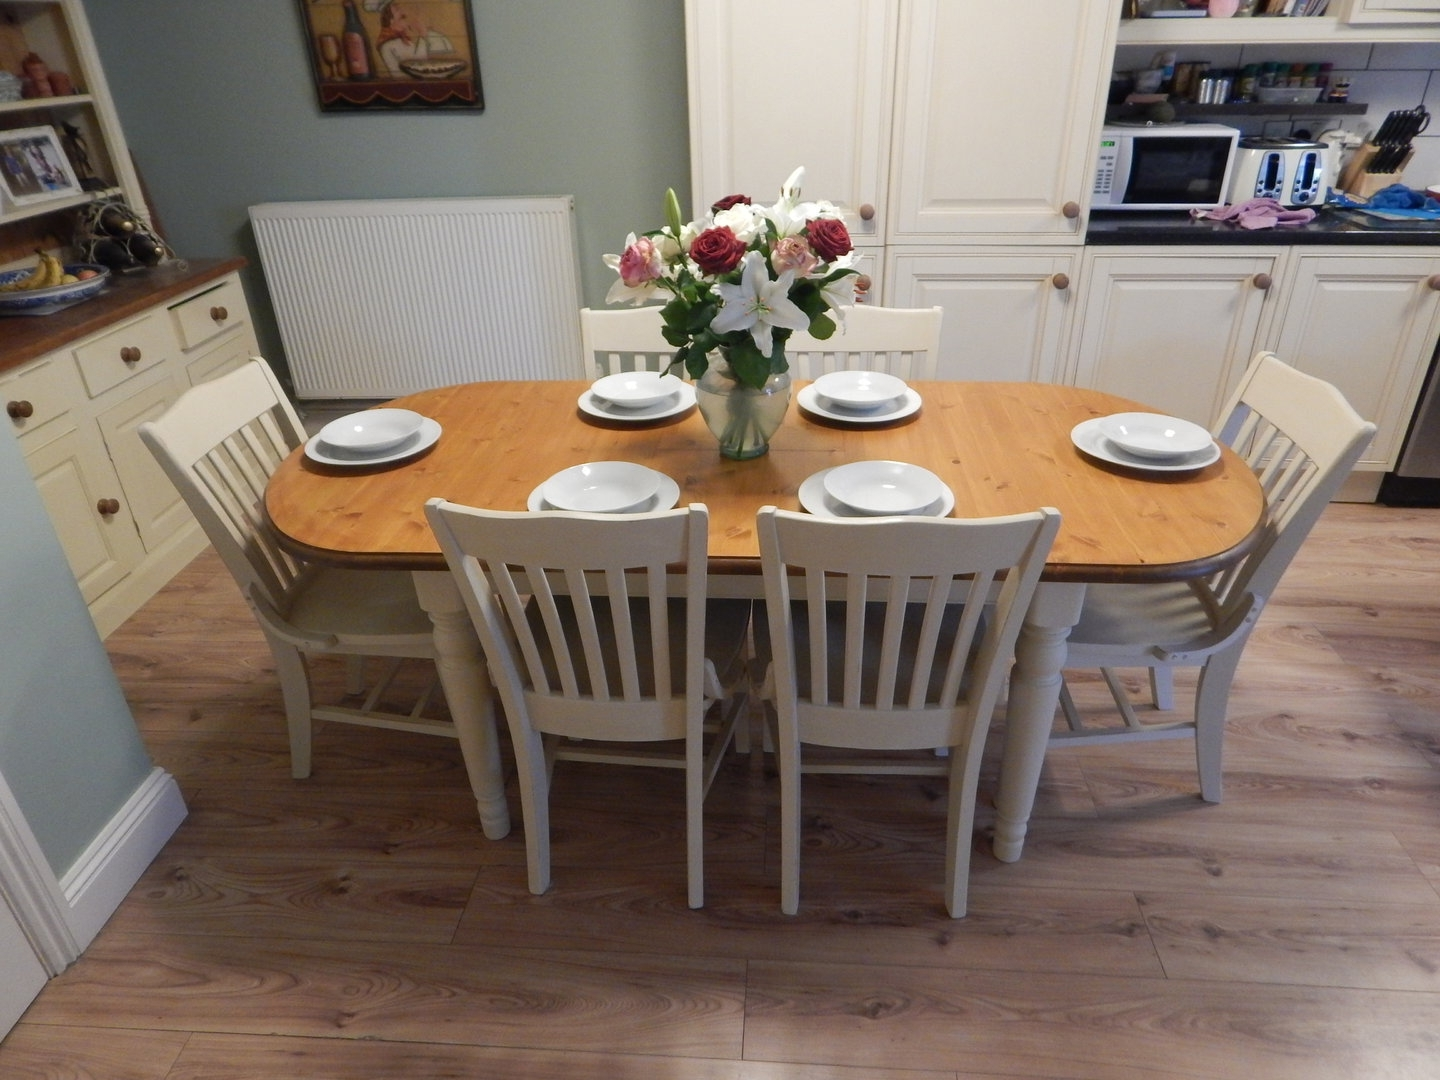 Preferred Extending Dining Tables With 6 Chairs In Shabby Chic , Ducal Pine Extending Dining Table & 6 Chairs (Gallery 16 of 25)